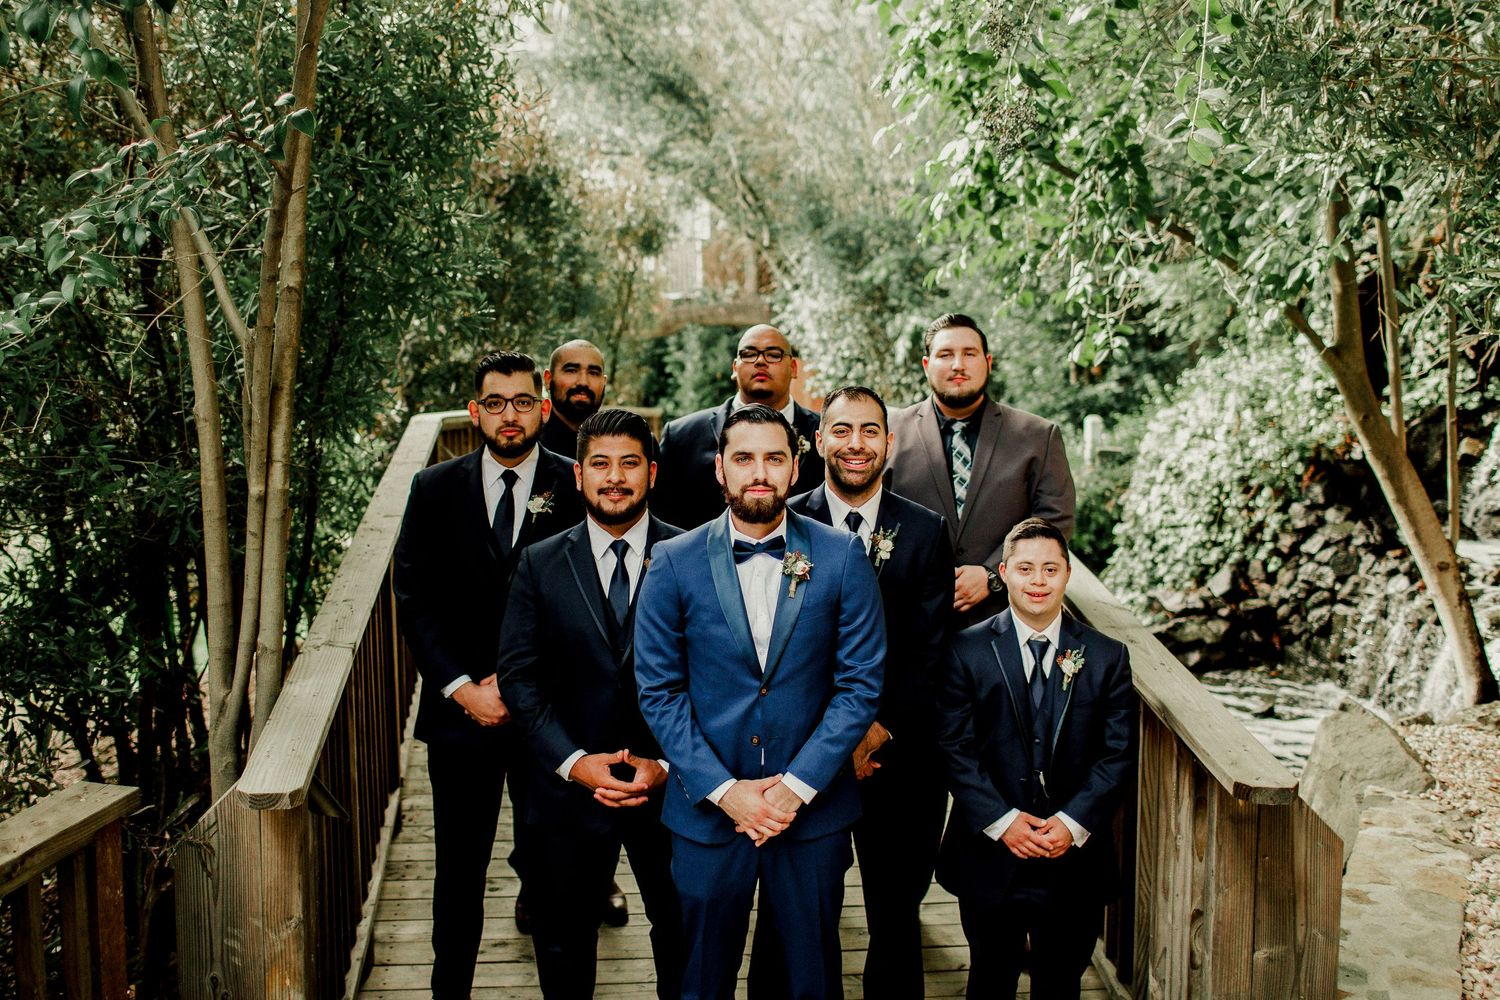 groomsmen formal wedding portraits